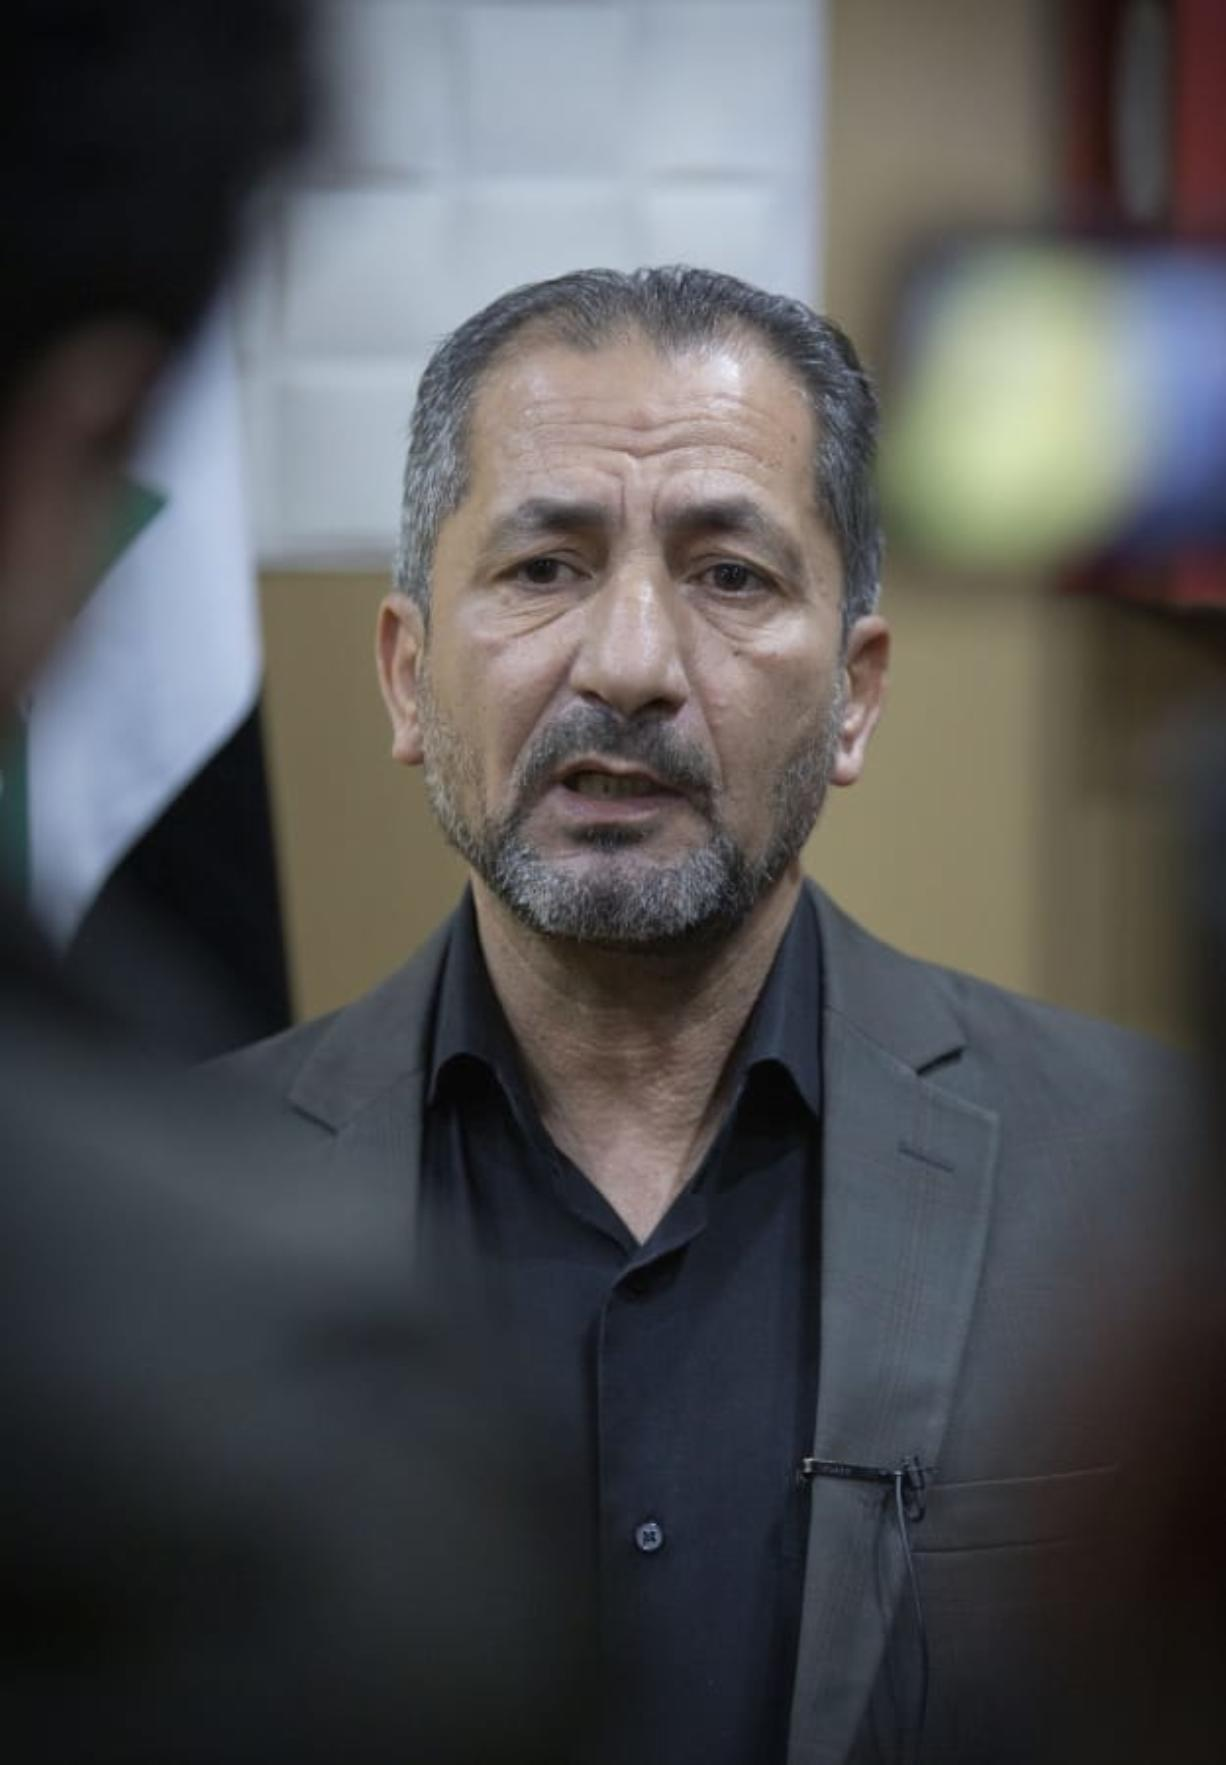 Mohammed Mohieh, the spokesman of Iraq's Iranian-backed Kataeb Hezbollah, or Hezbollah Brigades, gives an interview at his office, in Baghdad, Iraq, Monday, Dec. 30, 2019. Mohieh said Monday that the death toll from U.S.